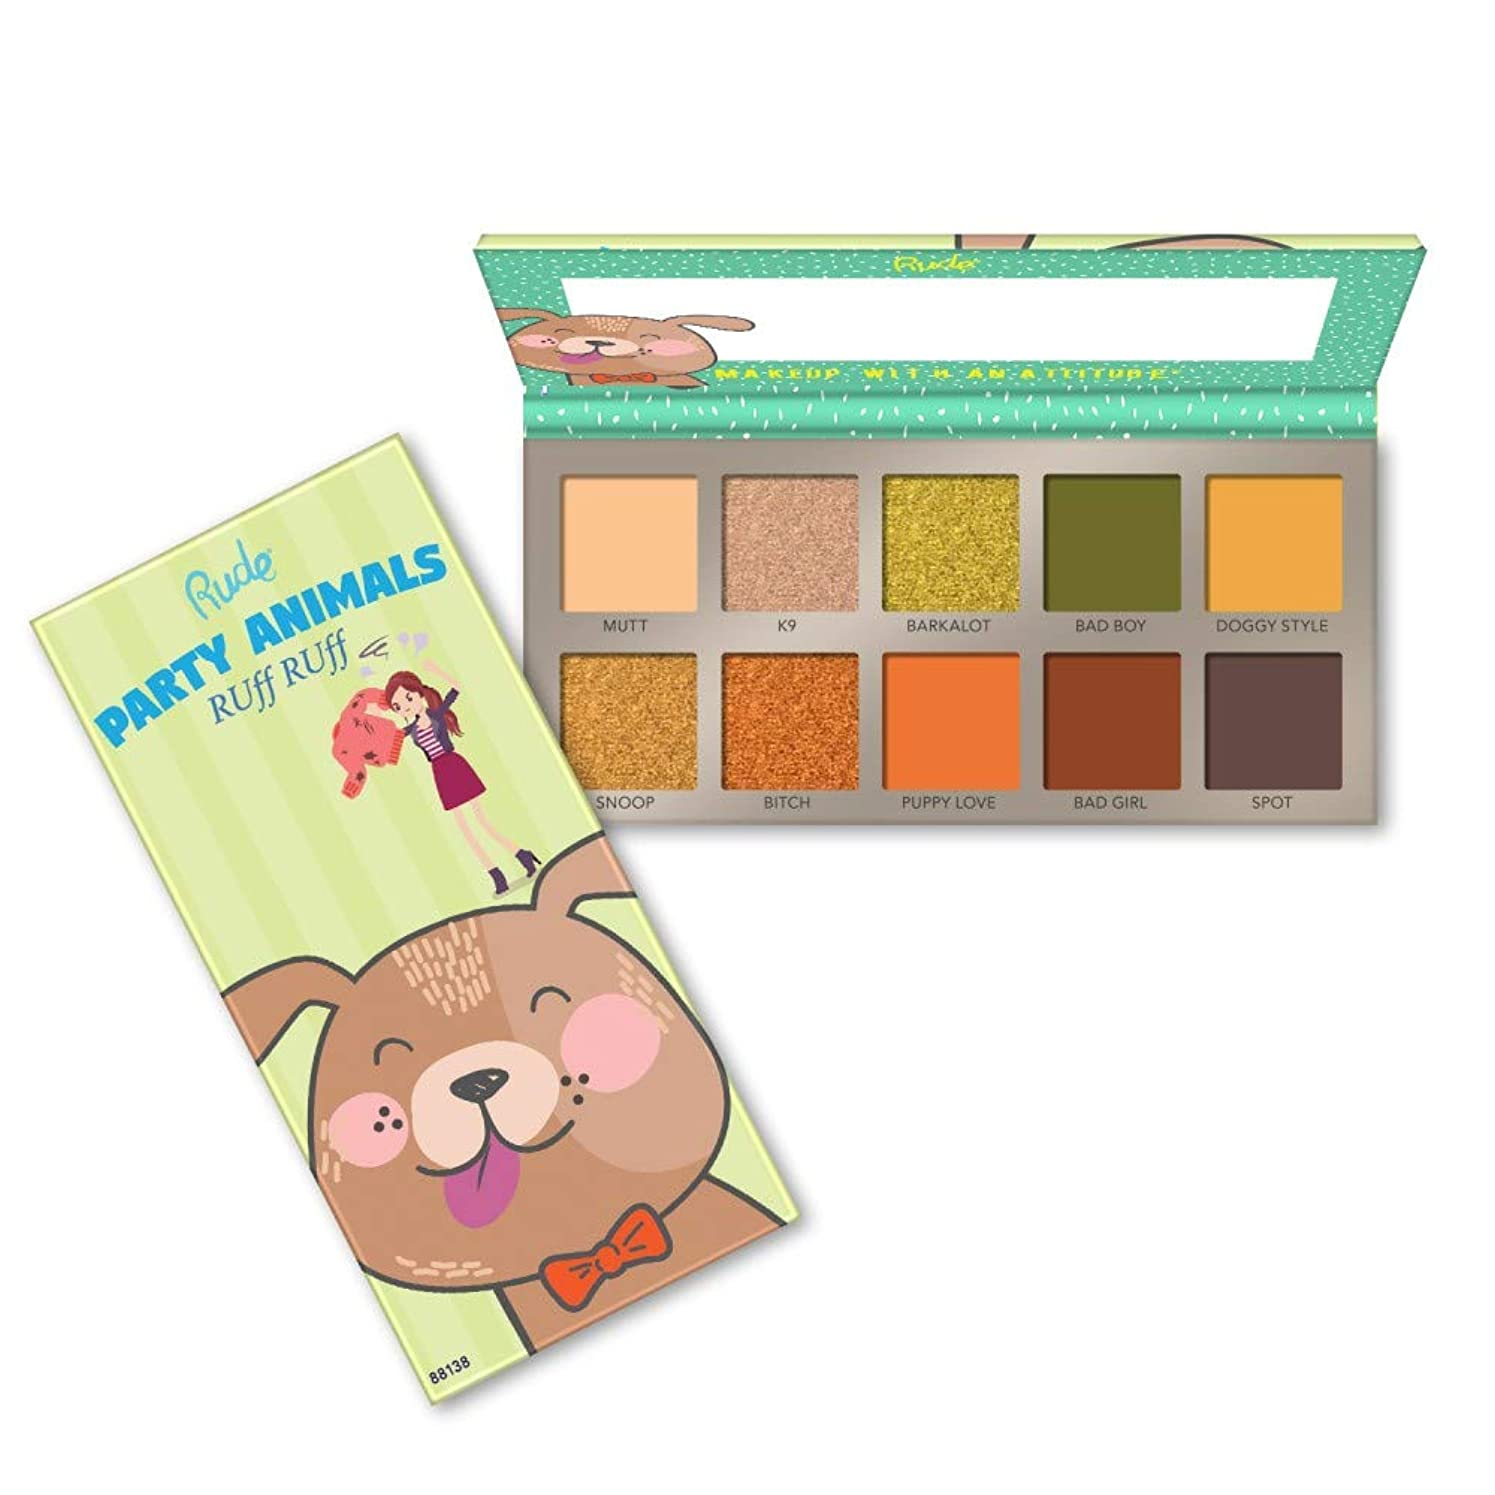 中央値変装した芸術(3 Pack) RUDE? Party Animals 10 Eyeshadow Palette - RUff RUff (並行輸入品)